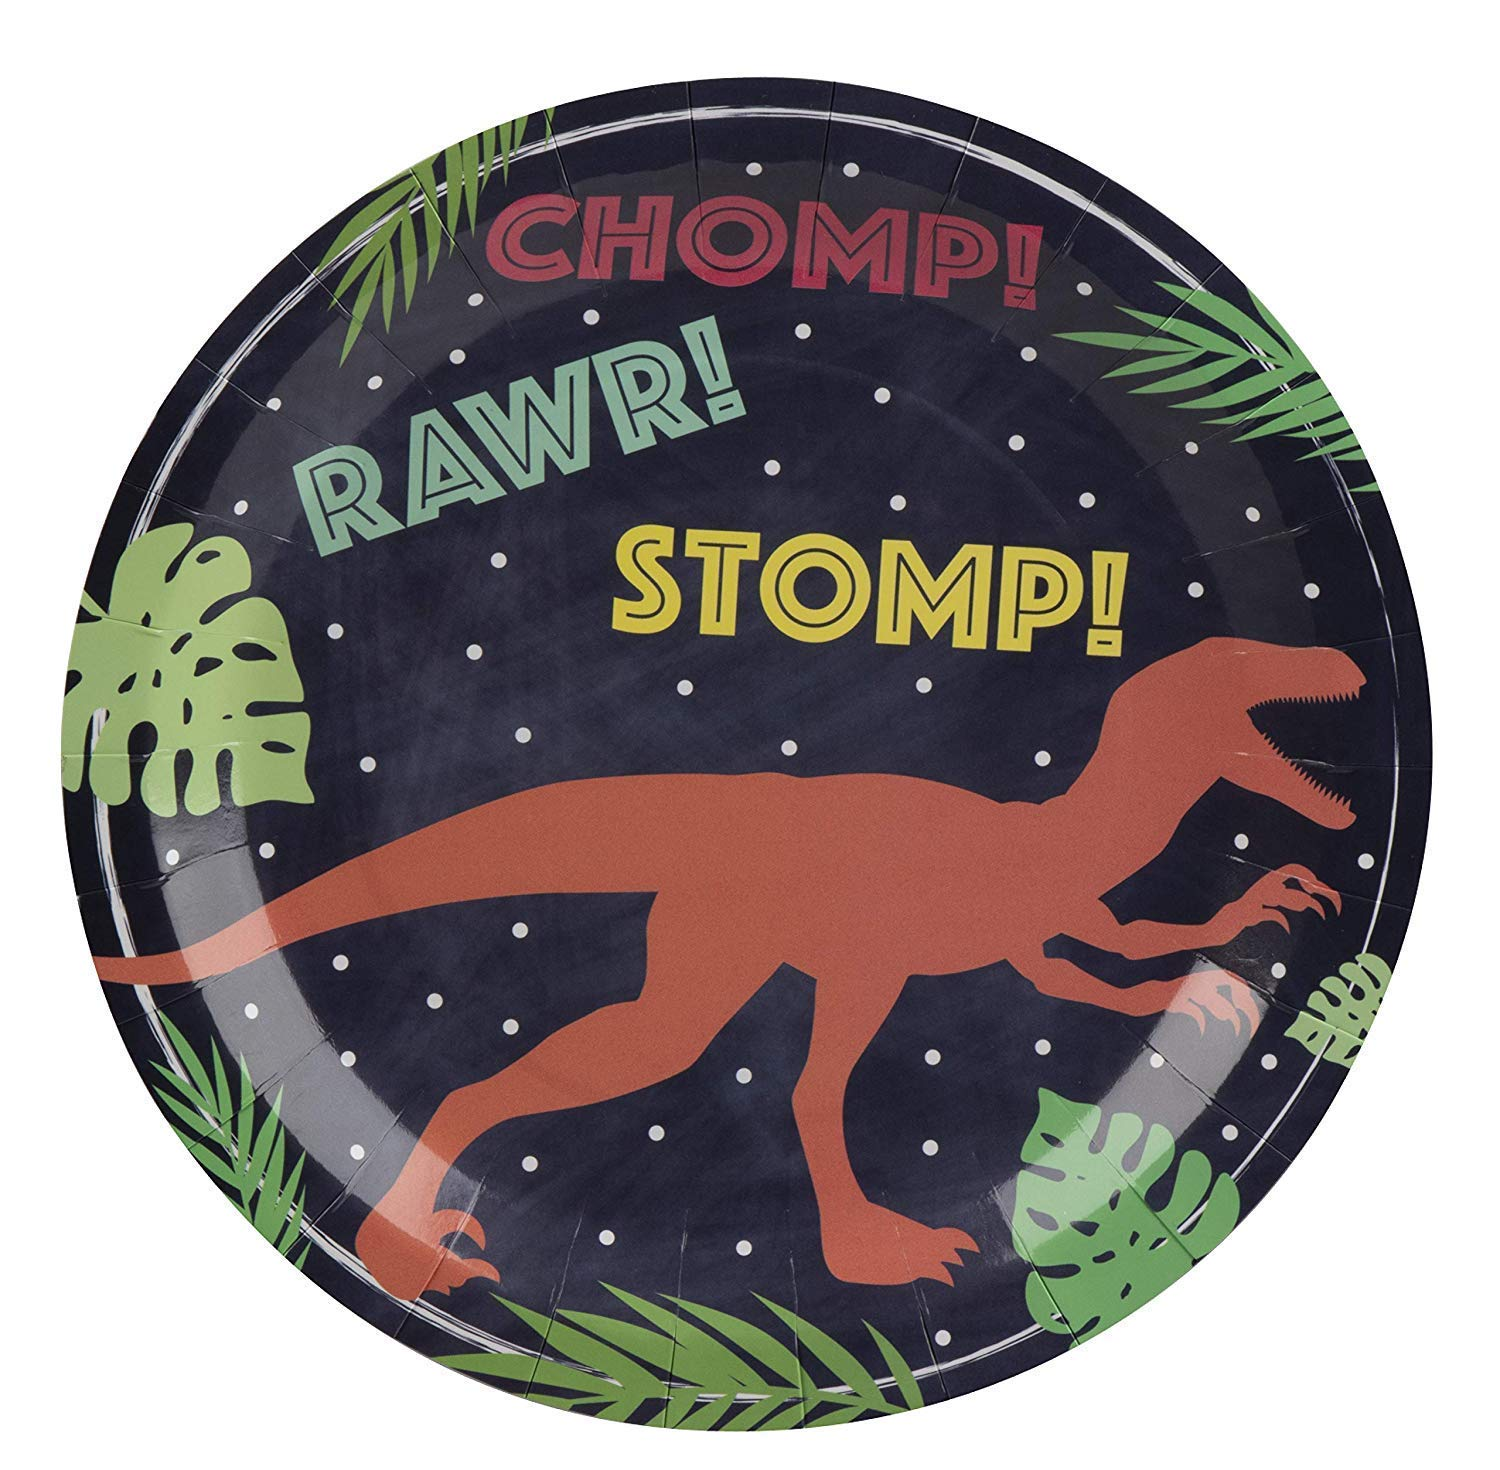 Dinosaur Plates - 80-Pack Dino Plates with T-Rex Print, Dinosaur Themed Kids Birthday Party Supplies, 9-Inch Round Cake Plates, Lunch, Dessert